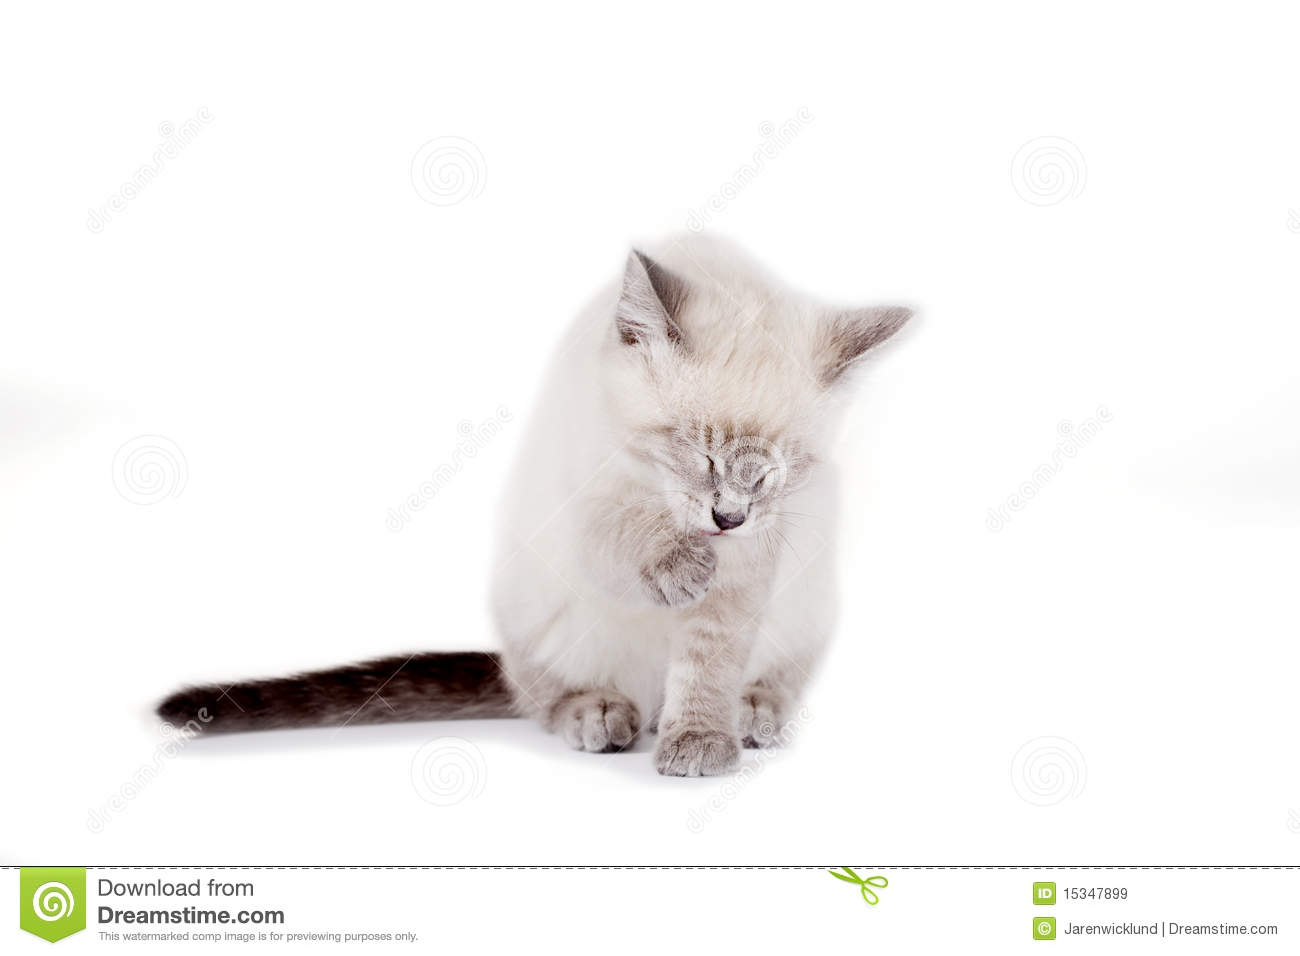 Designer Creates Amazing Playgrounds For Cats together with Royalty Free Stock Photography Domestic Cat Image8174027 as well Stock Photo Sleeping Tiger Claws Show His Image45152951 as well Cat Playground Room Goldtatze moreover 181761173805. on cat scratching paw